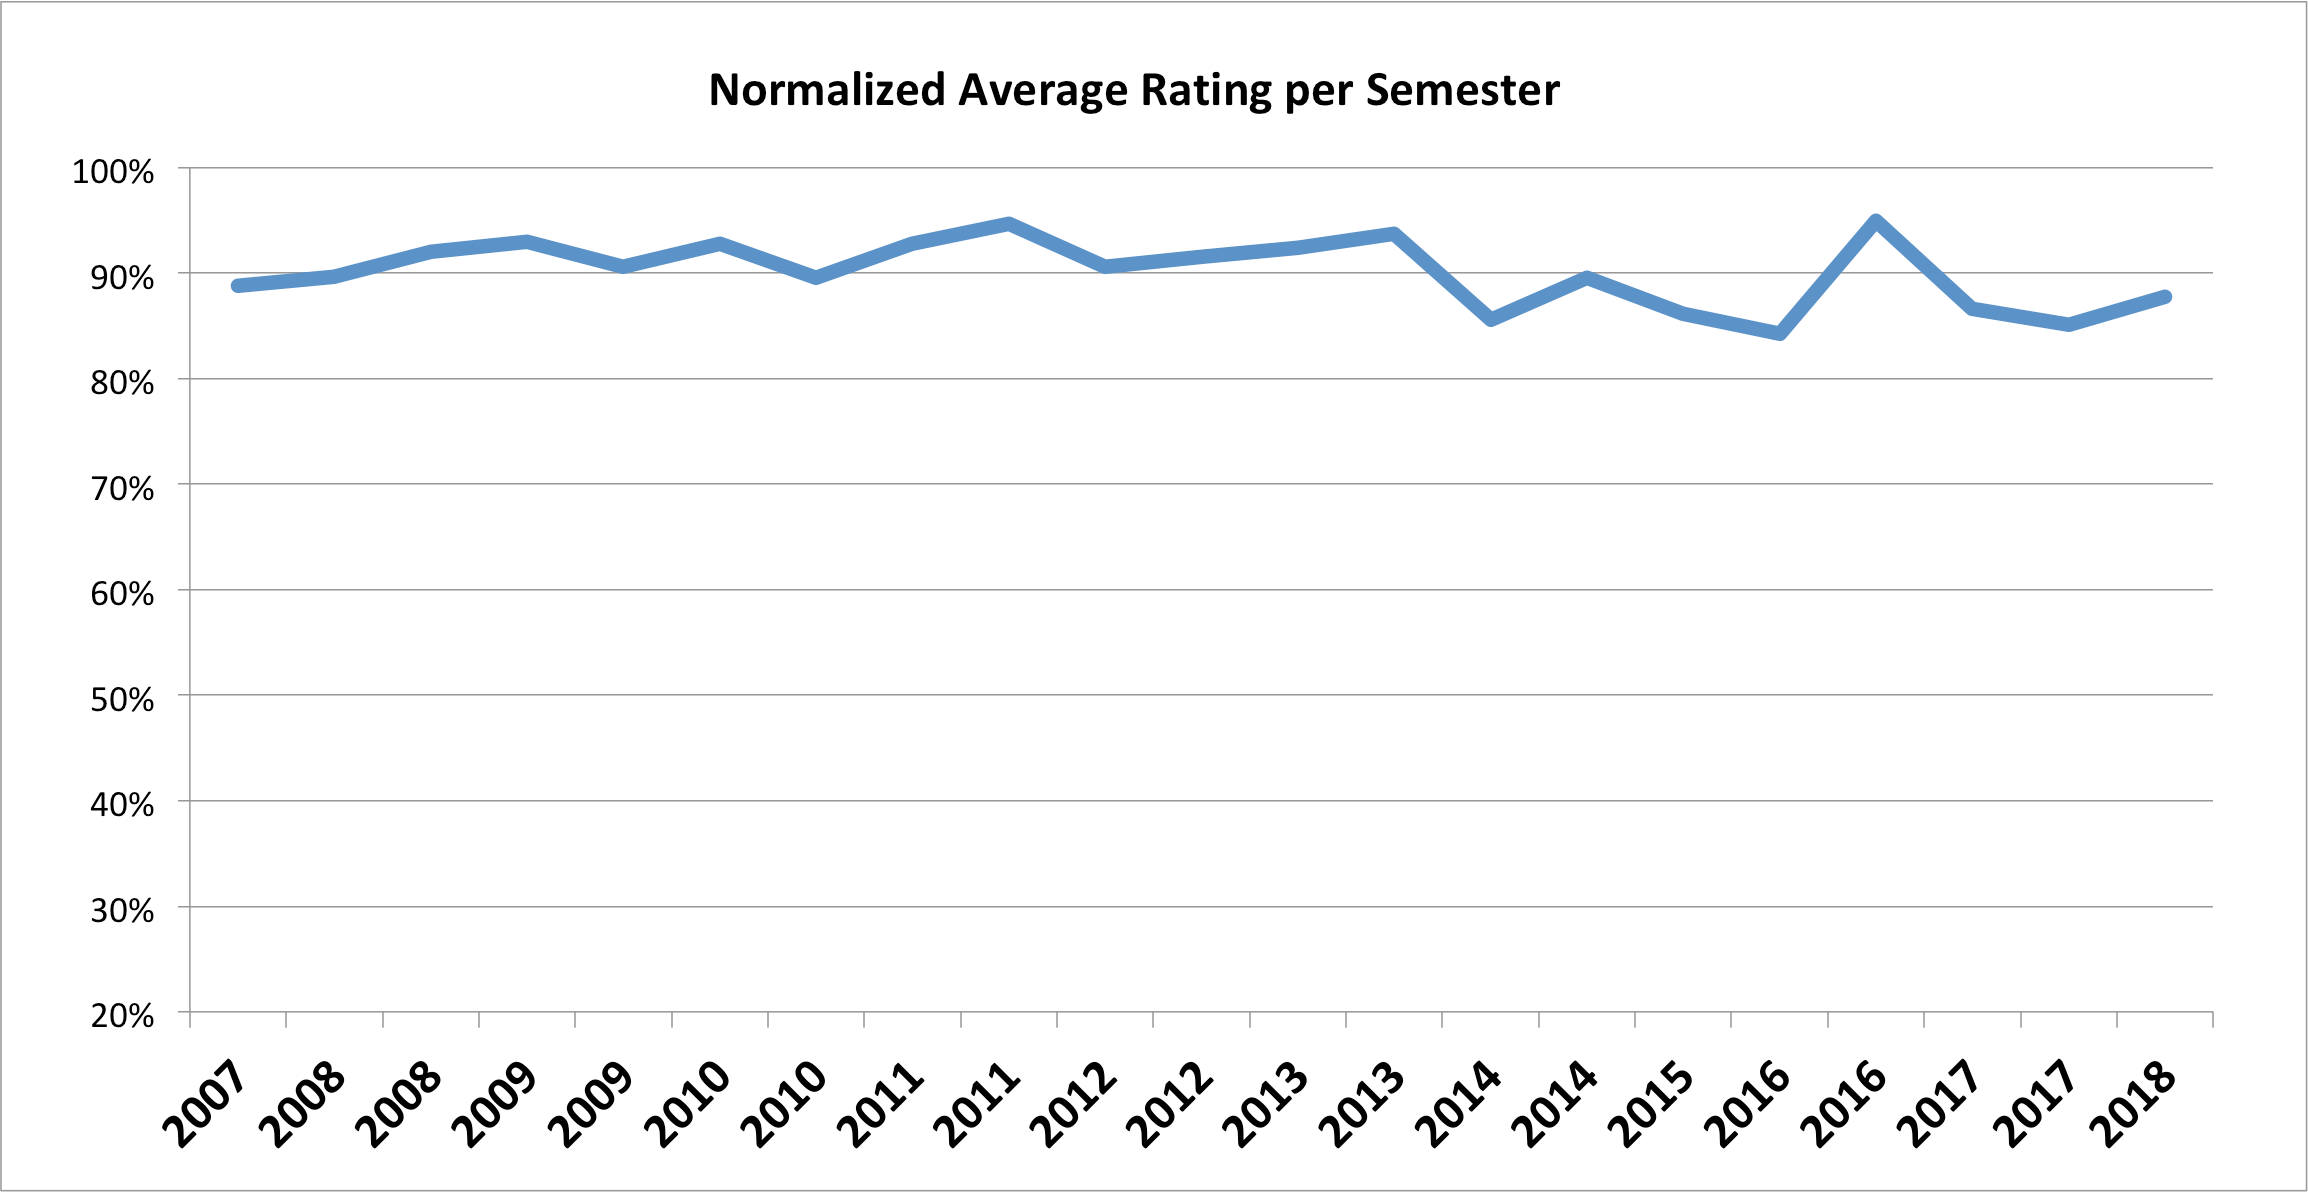 Normalized Average Ratings, Full Scale